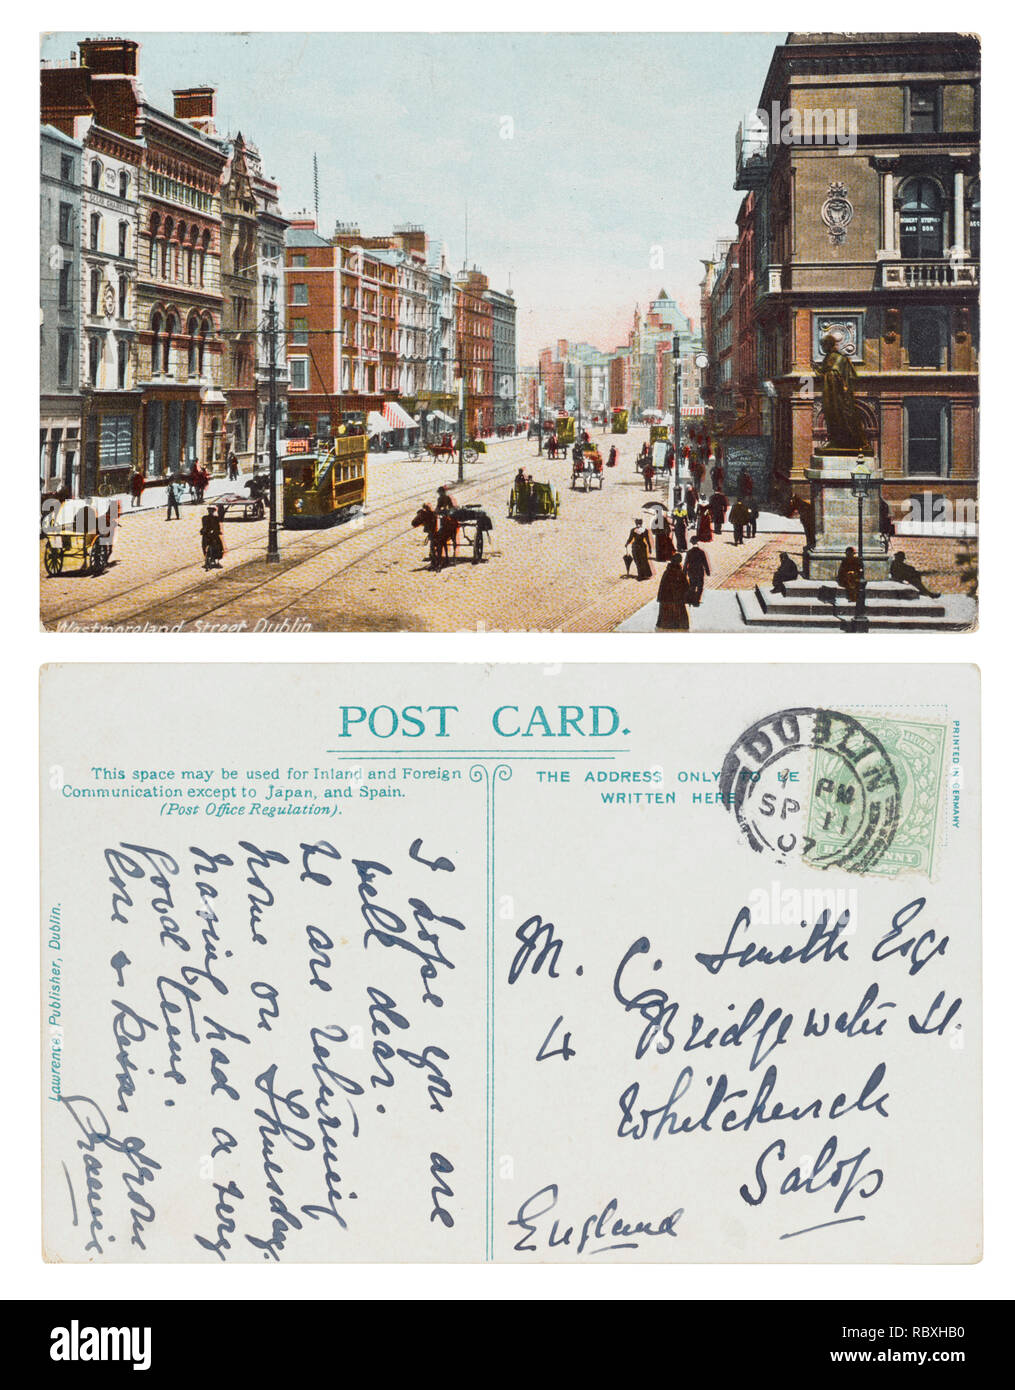 Postcard of Westmoreland Street, Dublin to Mr C Smith Esq, 4 Bridgewater Street, Whitchurch, Salop, in September 1907 - Stock Image